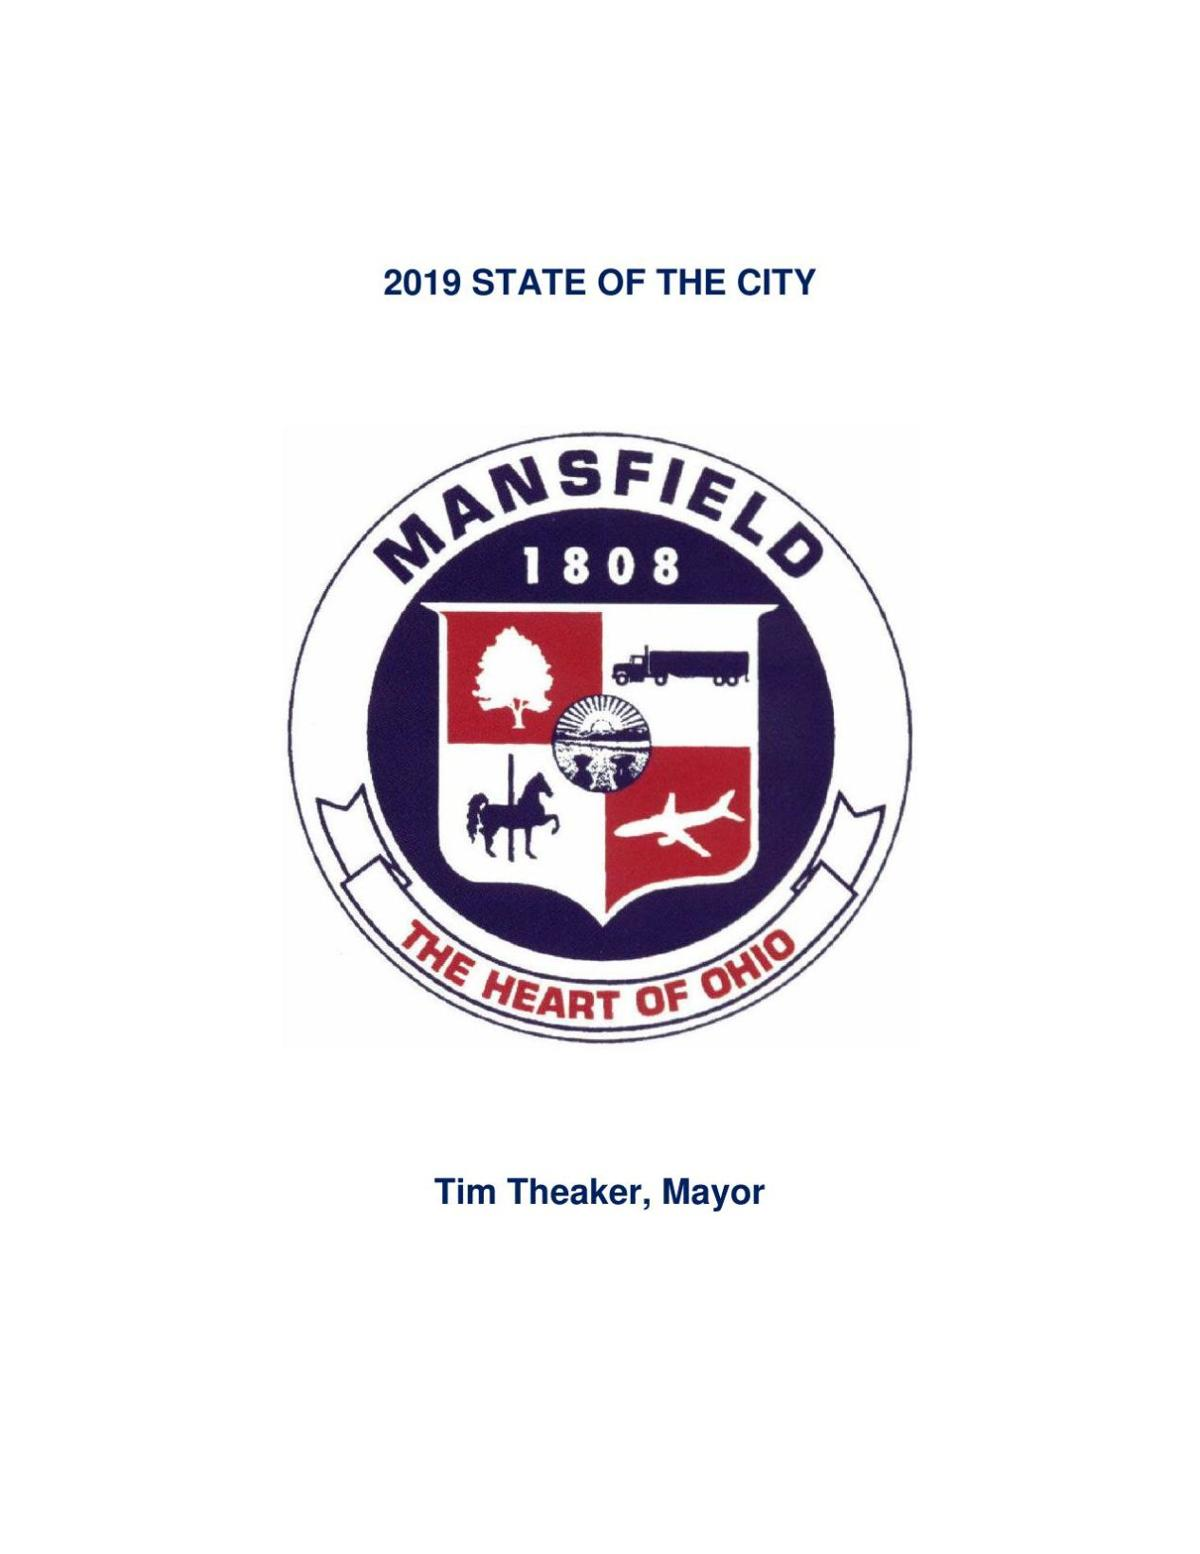 2019 Mansfield State of the City report